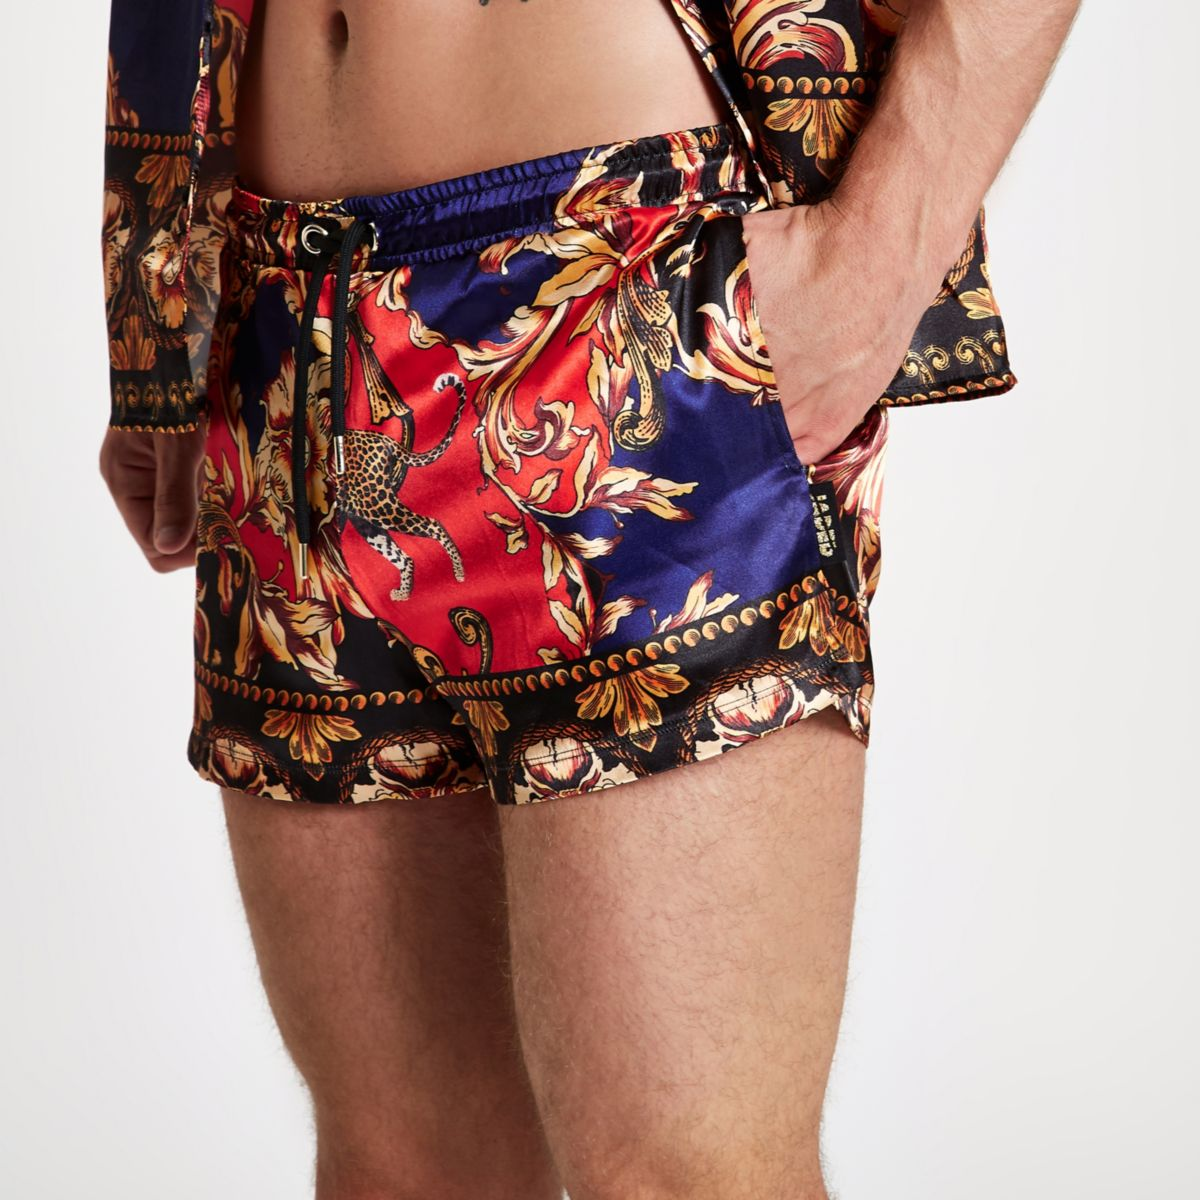 Jaded printed red Jaded shorts satin printed red Jaded Jaded printed shorts red satin red satin shorts OwxqnICU